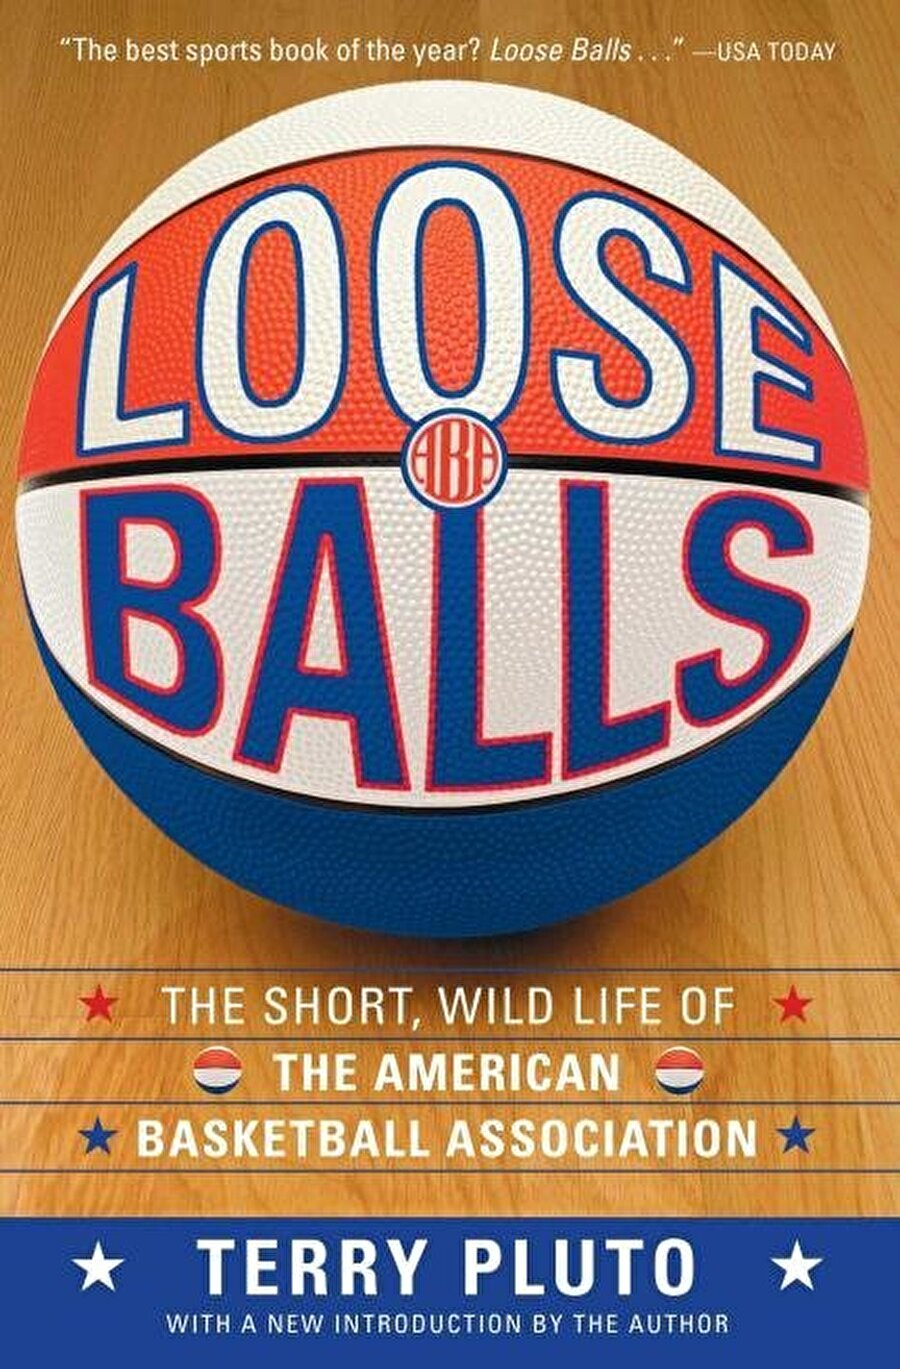 LOOSE BALLS: THE SHORT, WILD LIFE OF THE AMERICAN BASKETBALL ASSOCIATION: Terry Pluto